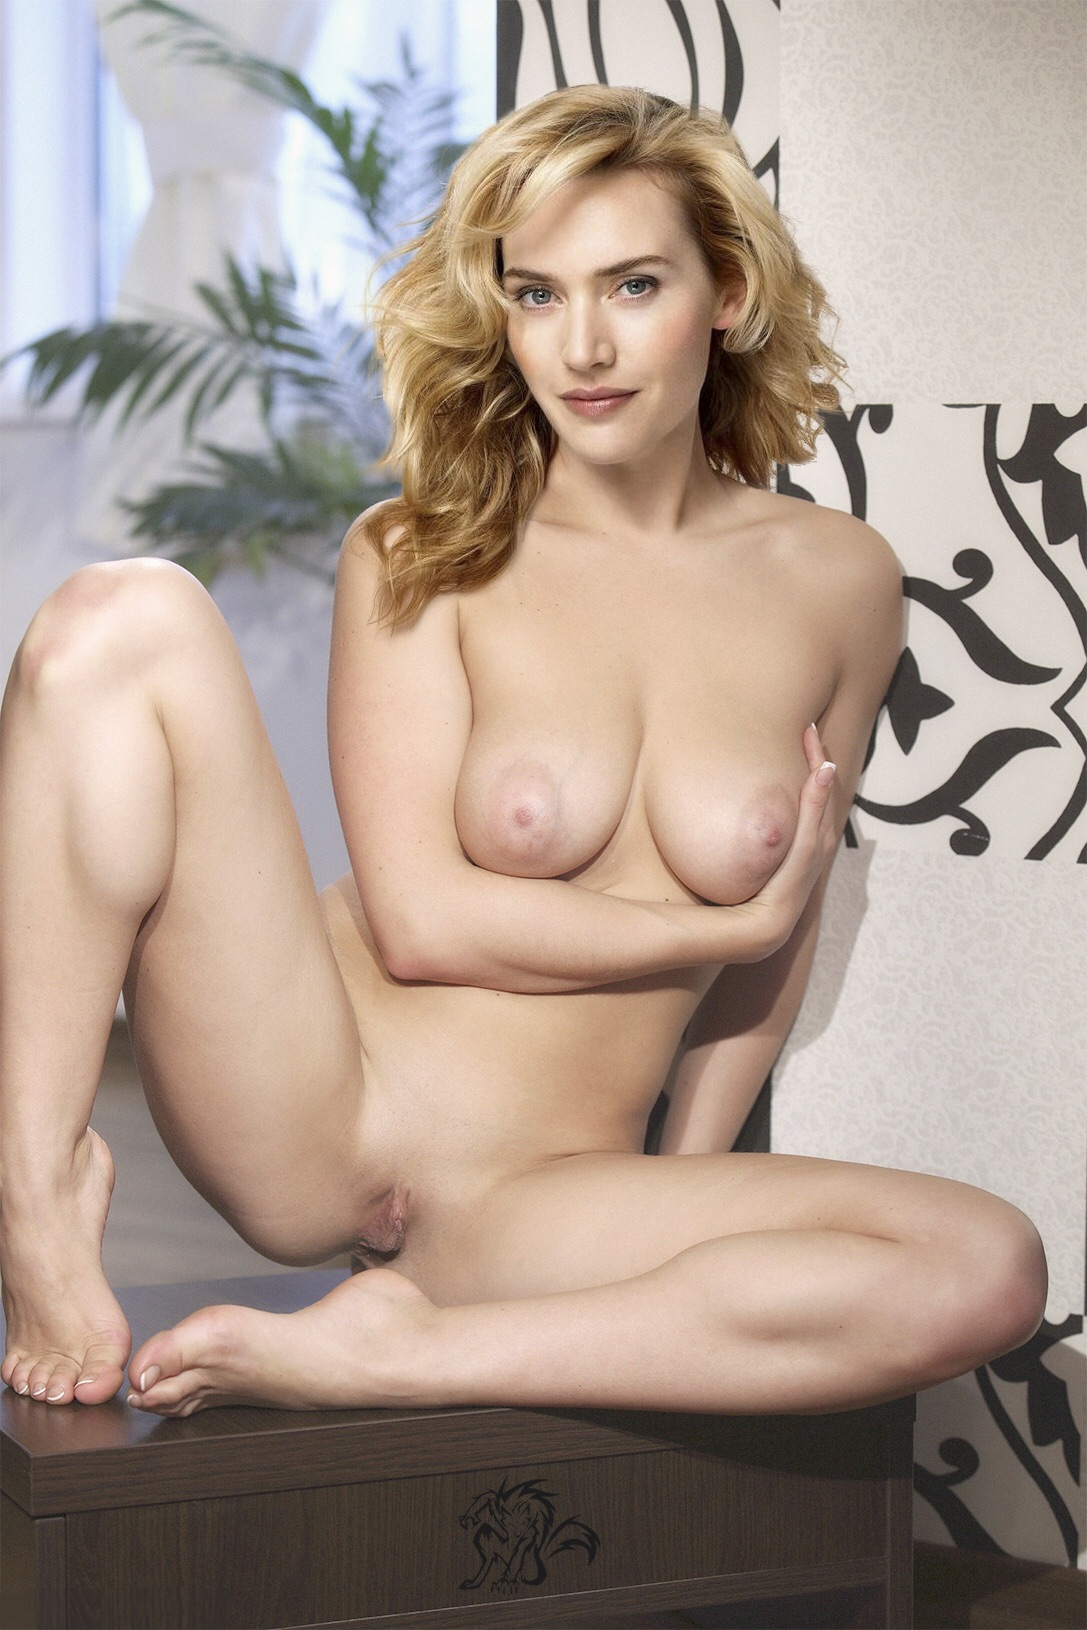 Nude celeb kate reed simply does